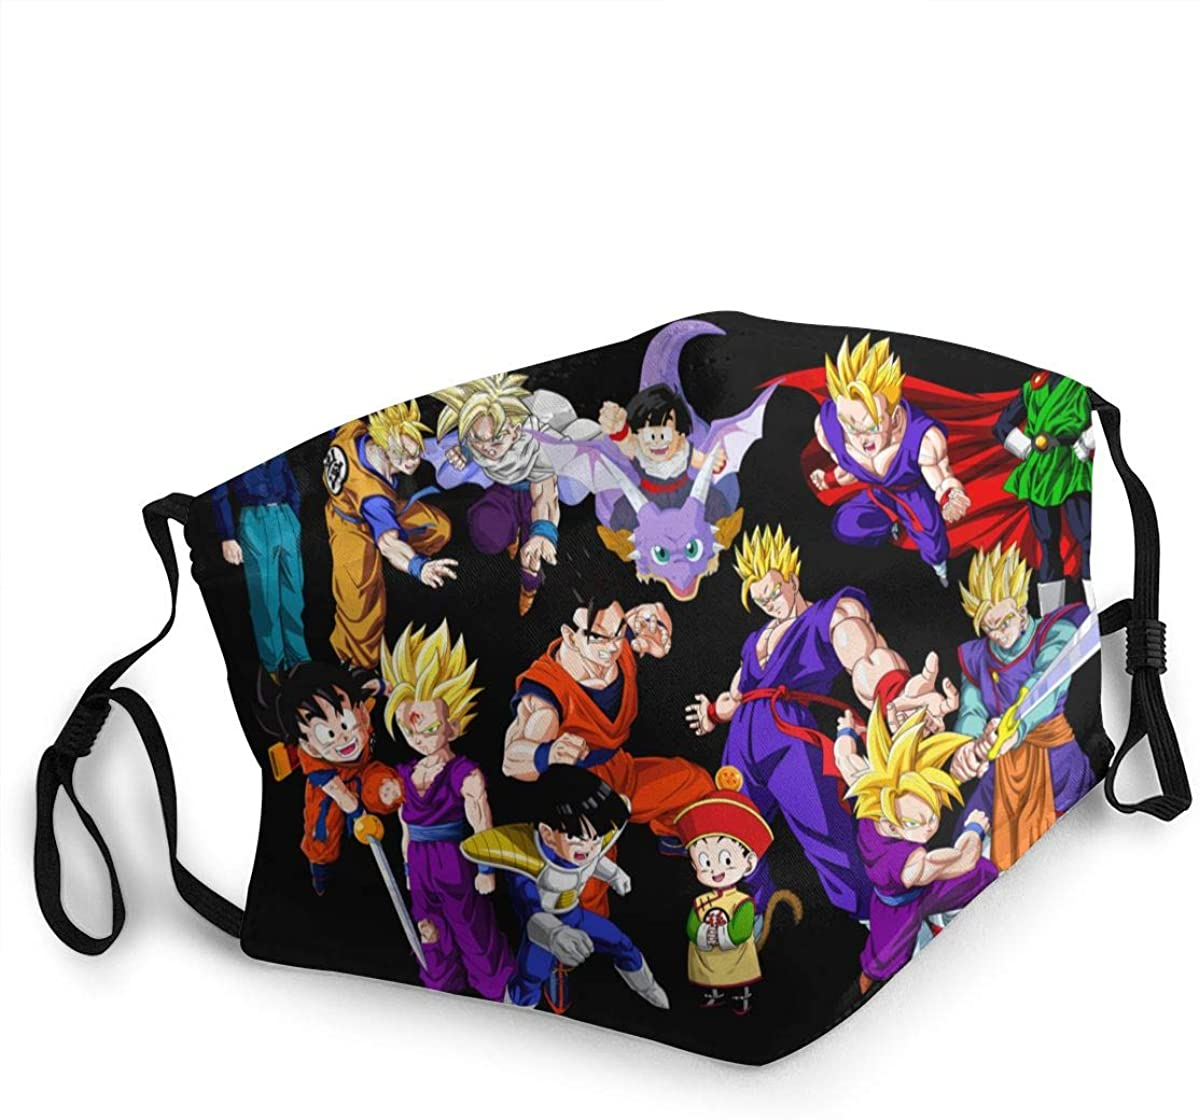 Dragon Ball Z Washable Reusable Unisex Breathable Adult Dust Face Mouth Cloth Balaclava (Multiple Outfits)